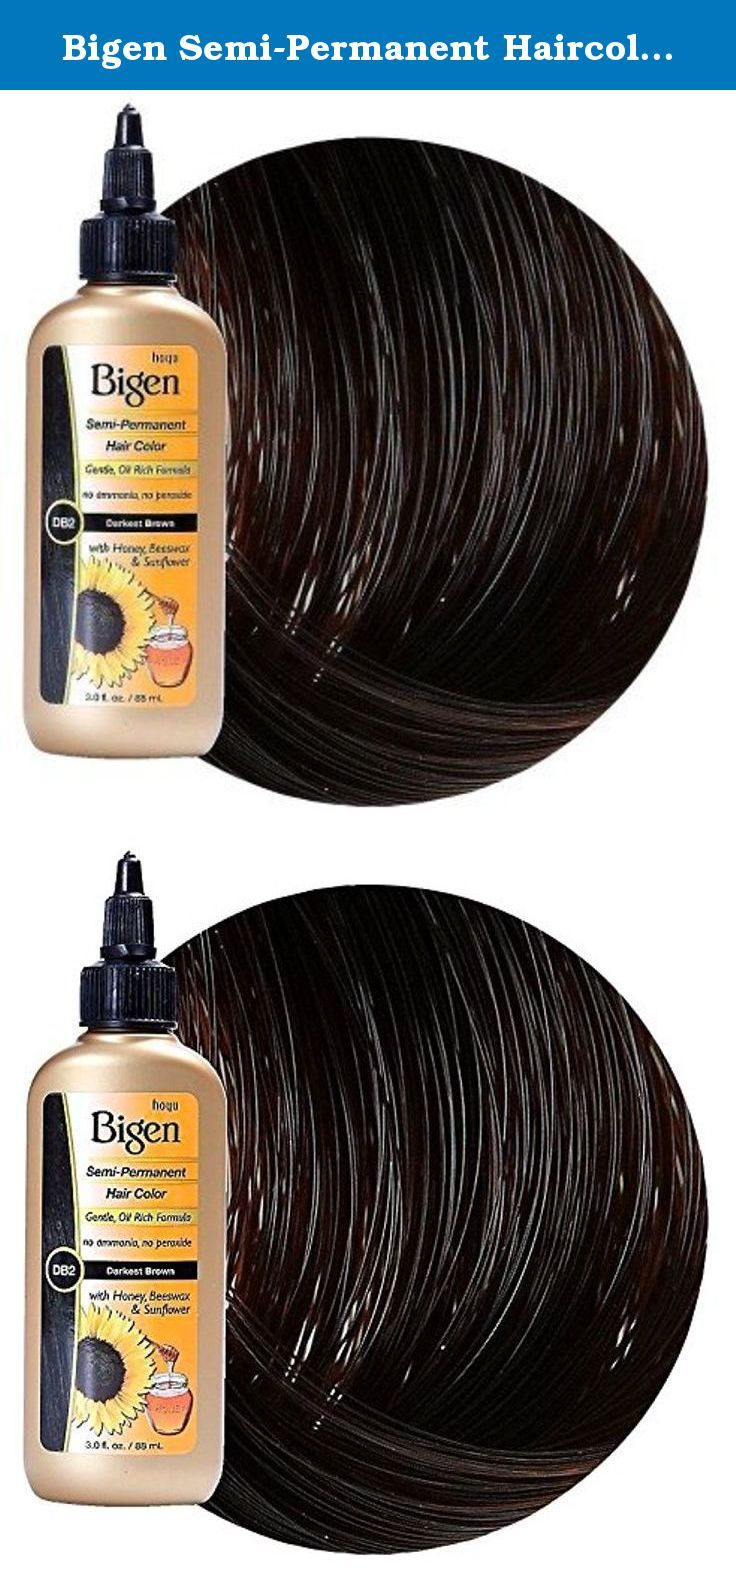 Bigen Semi Permanent Haircolor Db2 Darkest Brown 3oz 2 Pack